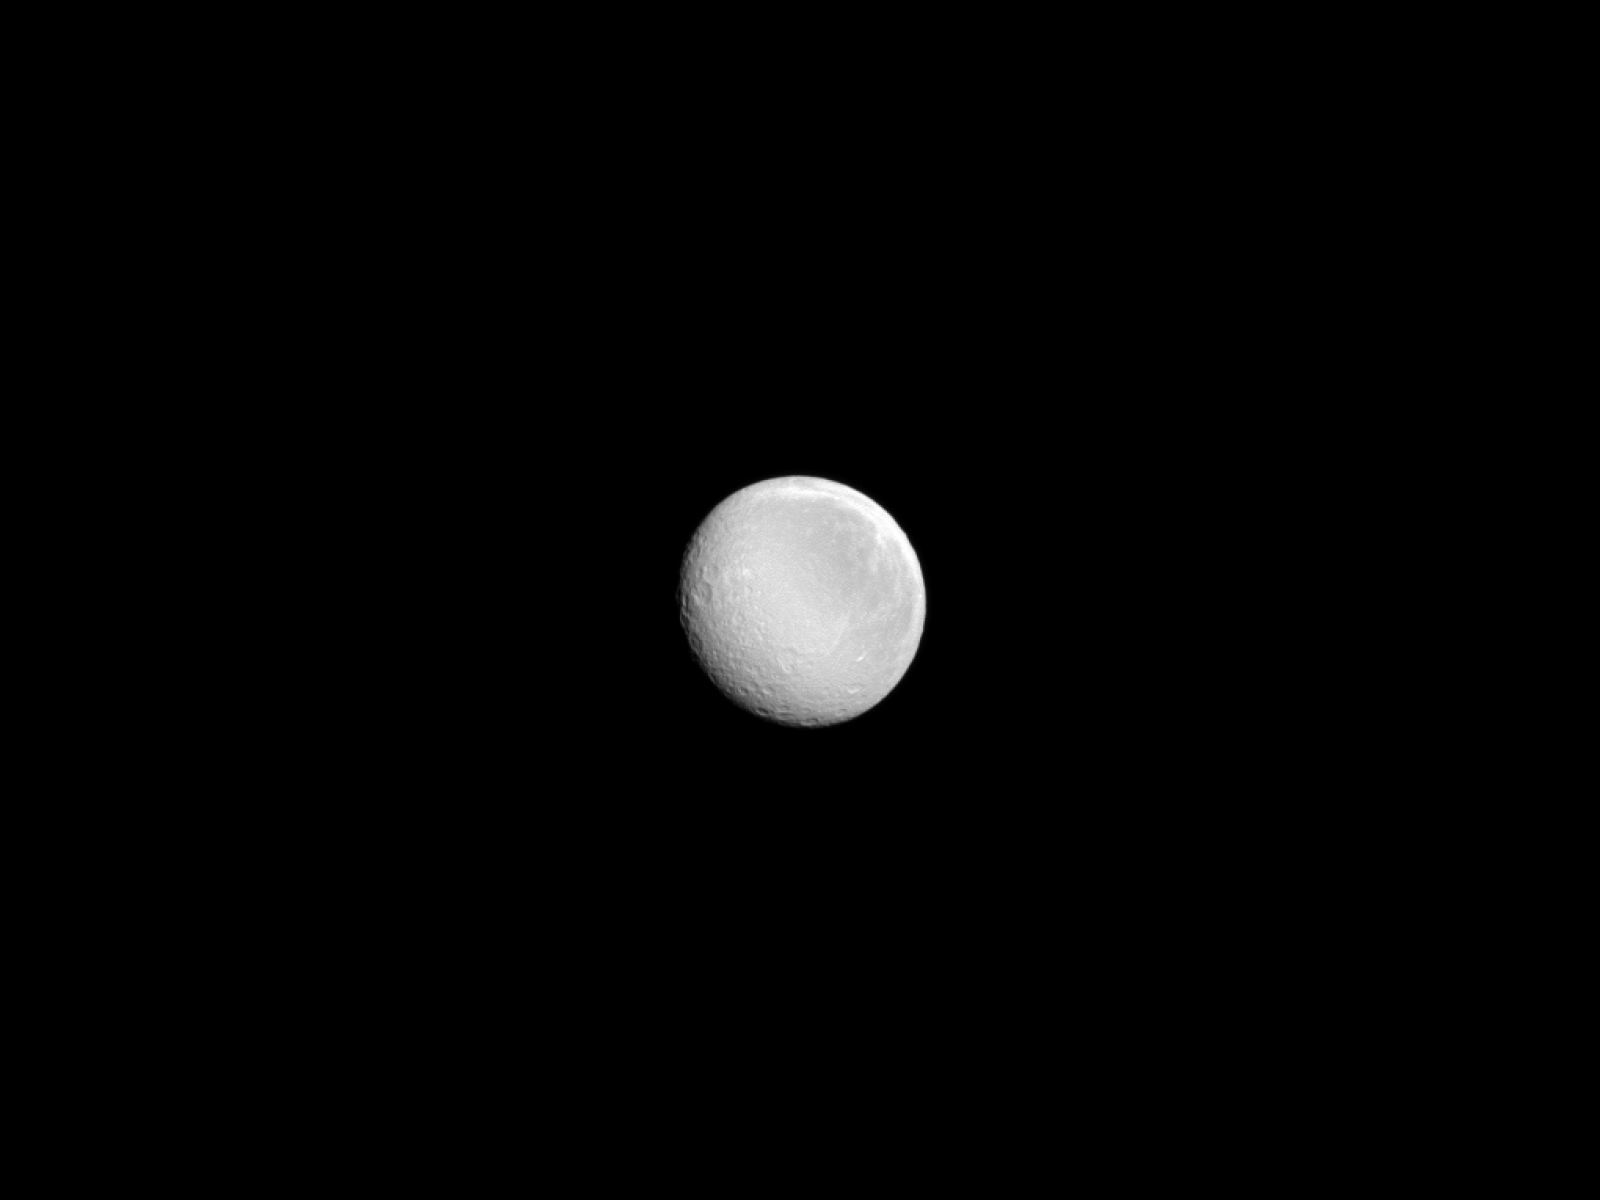 Nearly Full Rhea Cassini View